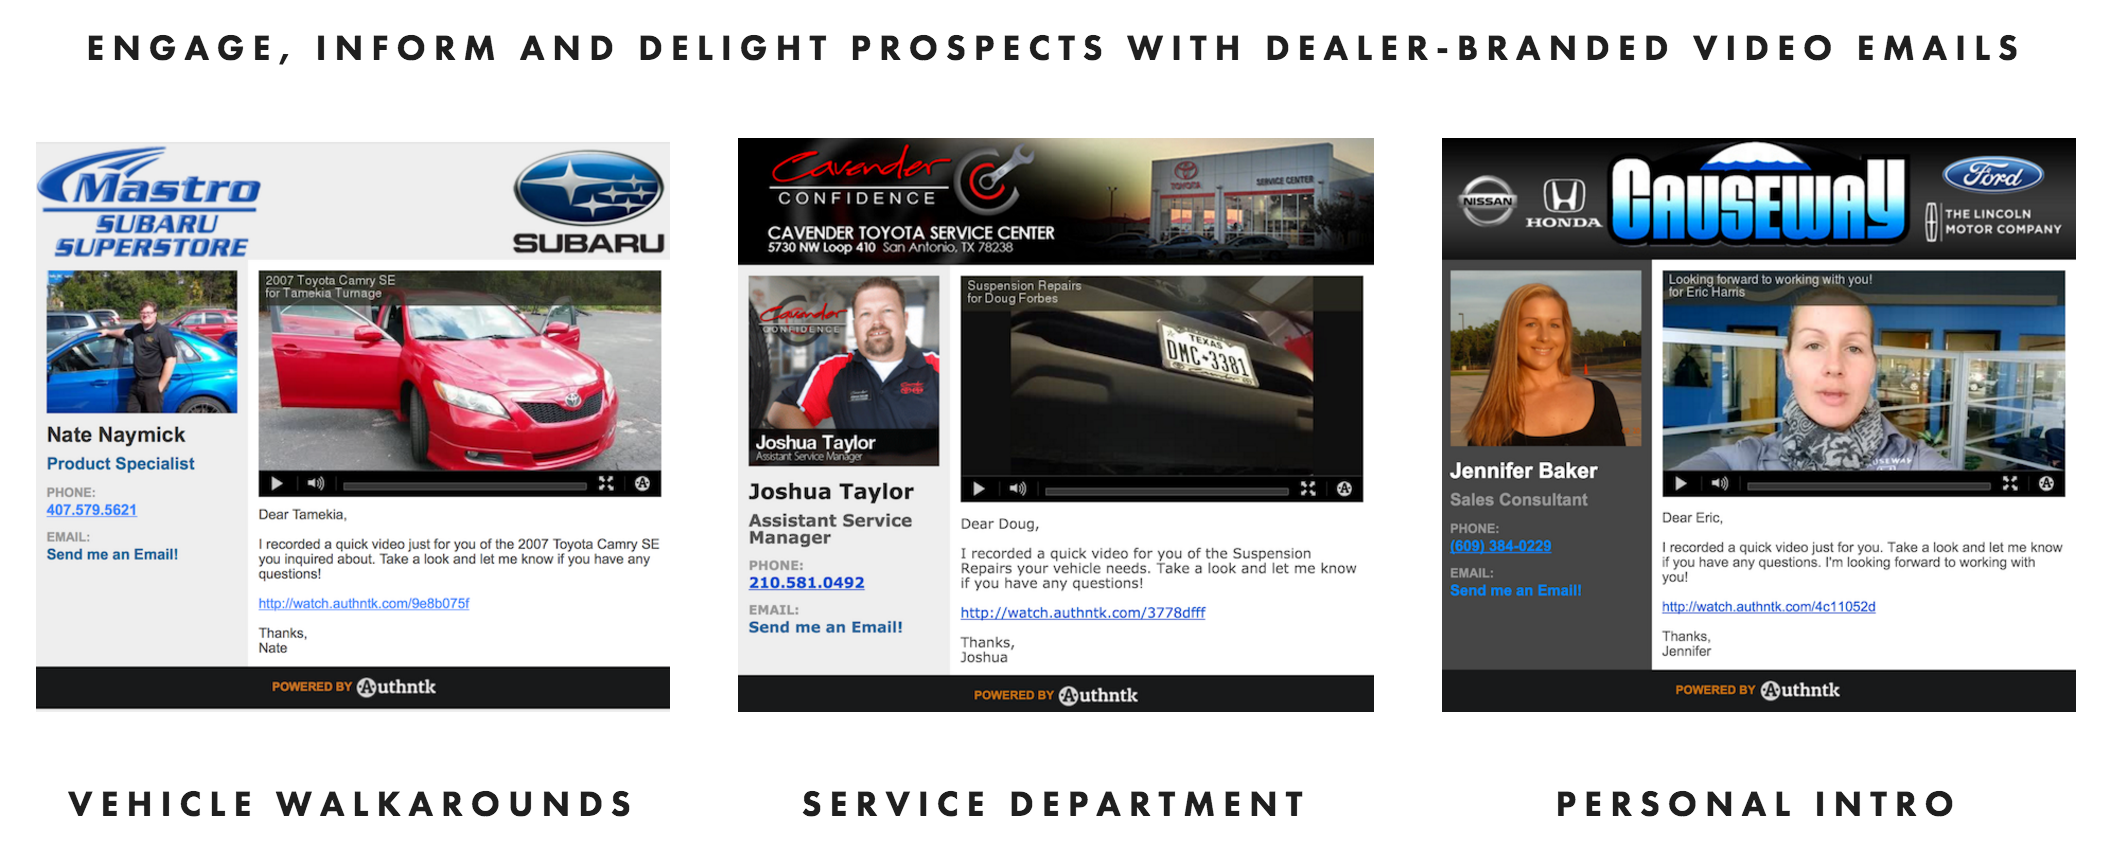 Engage, inform, and delight customers with dealer-branded video emails